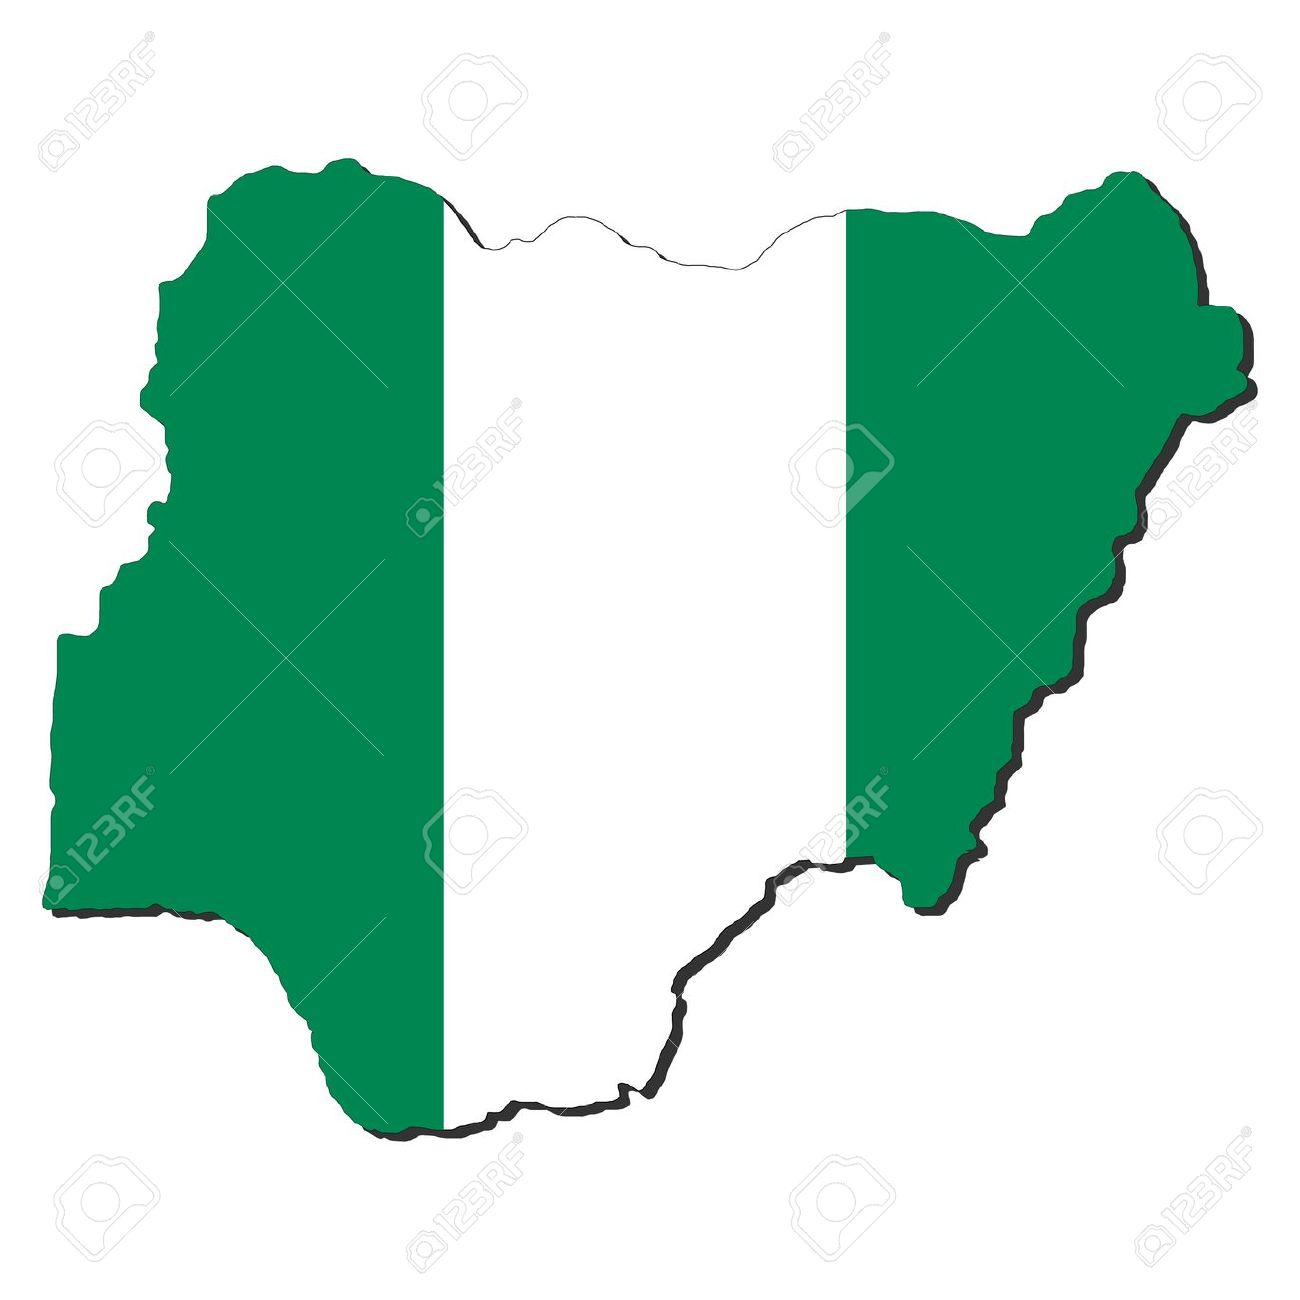 Envisaging A Youthful Nigeria in 2016